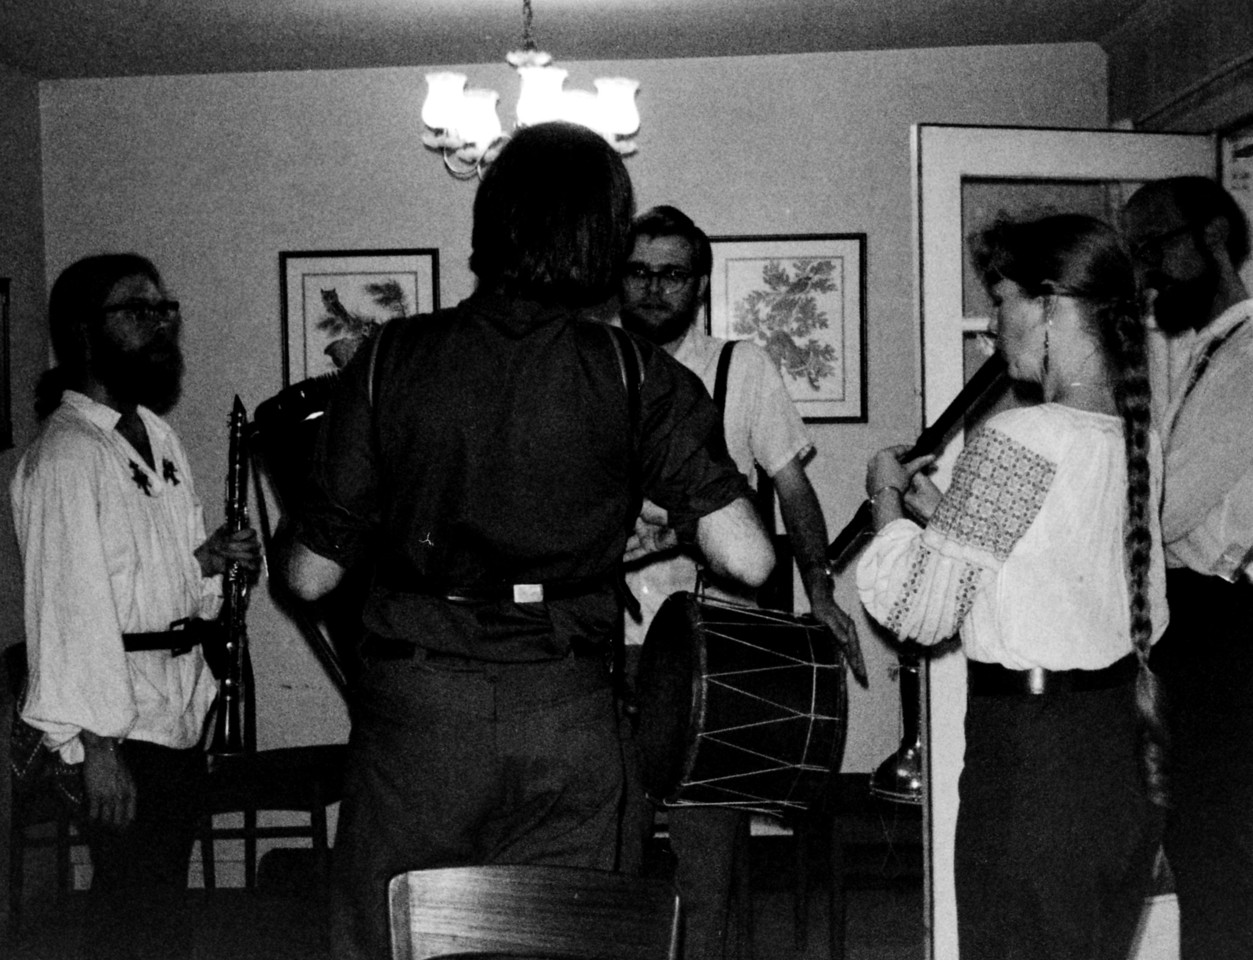 """The 1974 camp at Sweet's Mill inspired people to play Balkan music at home. For instance,  Peter Ward started the band """"Sviraći""""  -- which practiced weekly in our living room in Menlo Park, CA.  Mike Gage, Lew Smith, Melissa Miller, Jim Little (and bass player Cliff Walters, not pictured) were early members. [Lew, Melissa, and Jim have continued Sviraći for decades.]"""